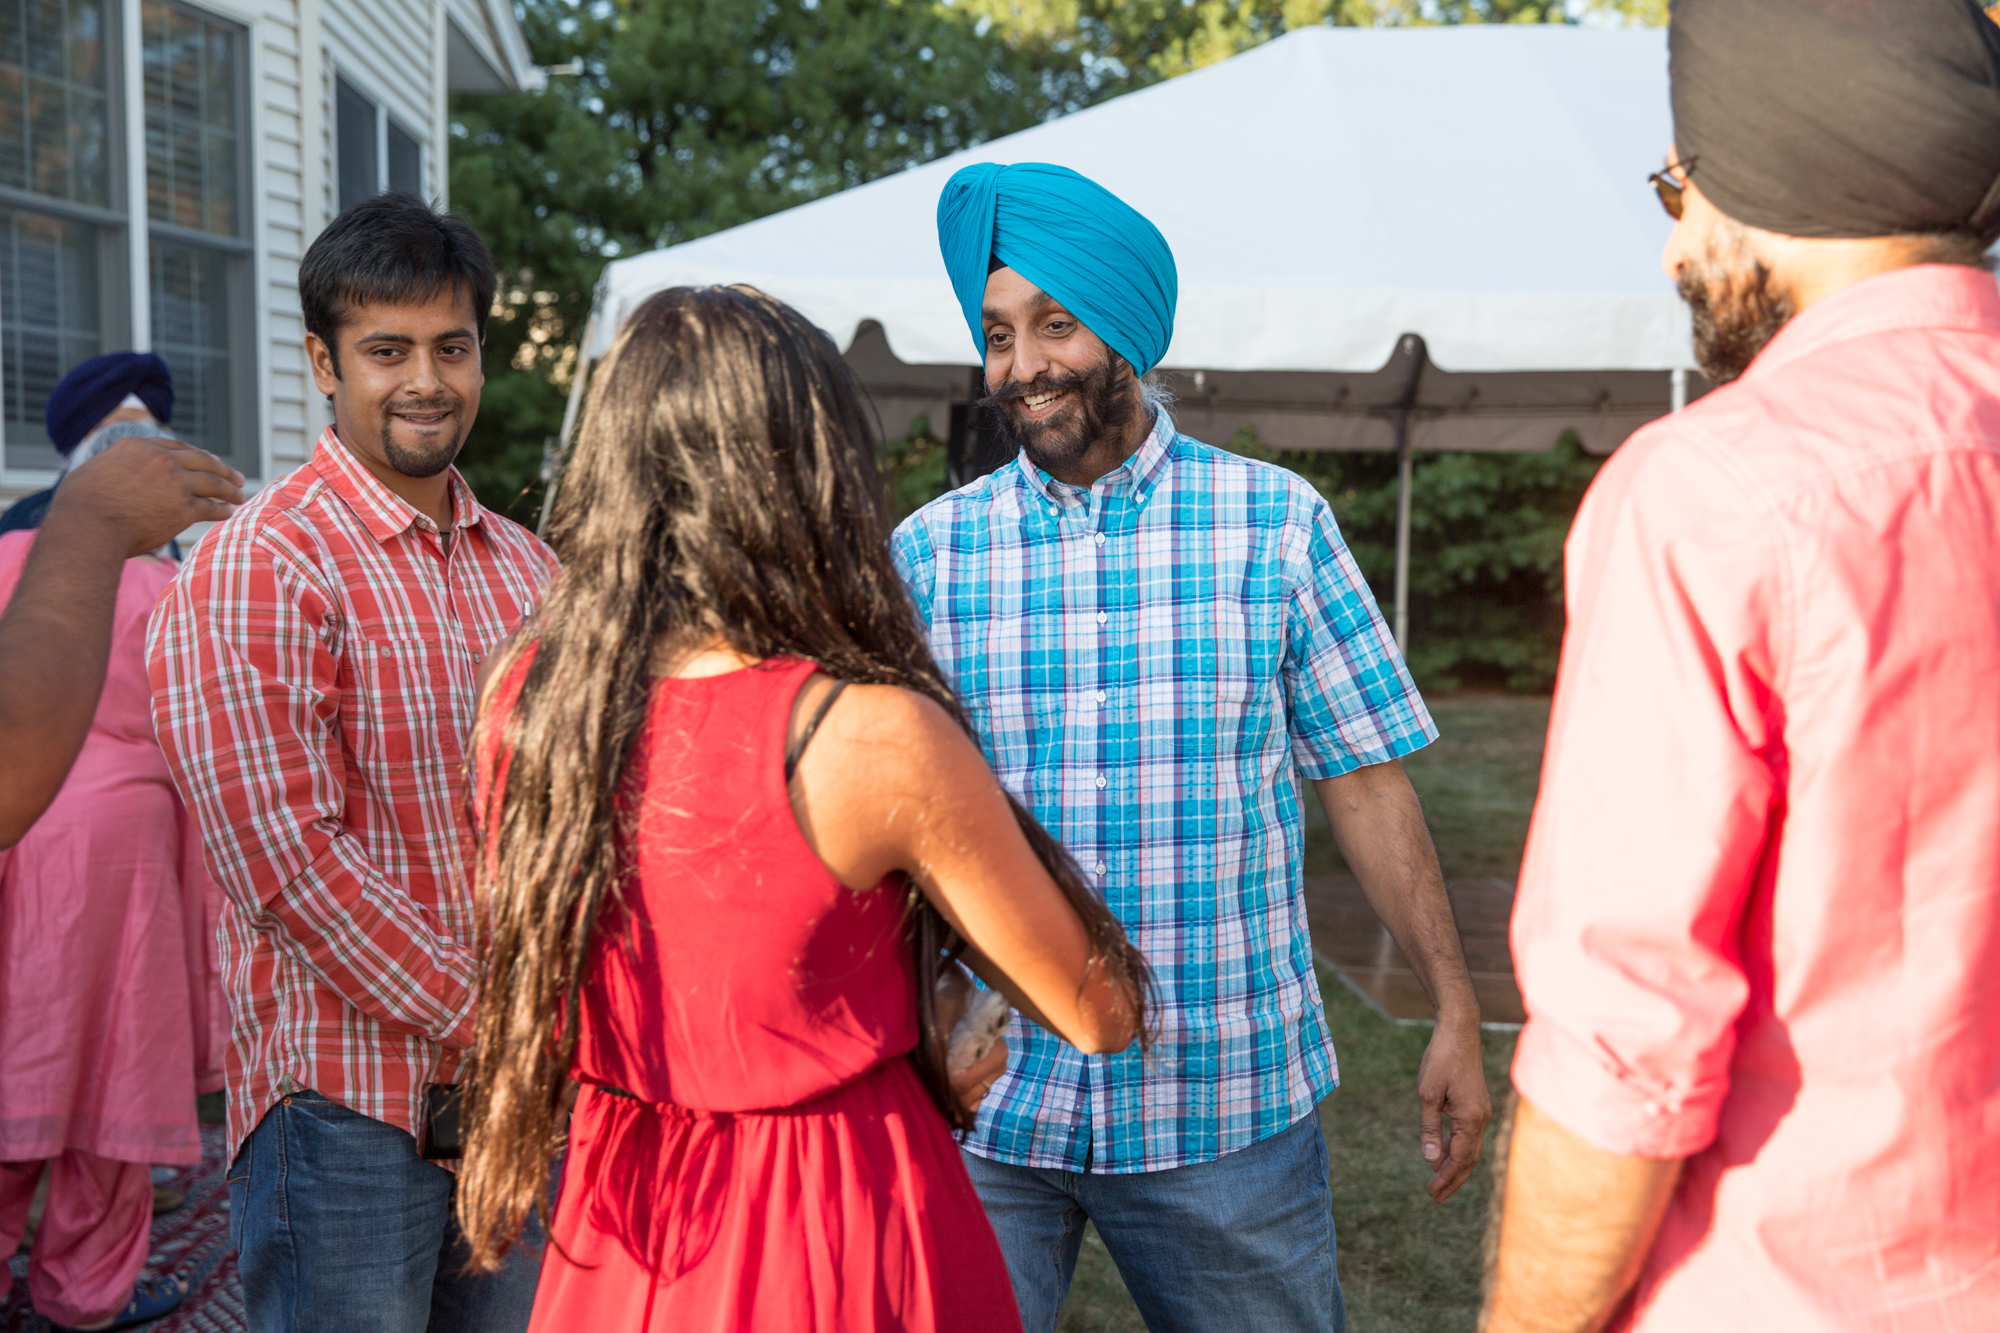 4-William Hendra Photography Singh Graduation Party.jpg